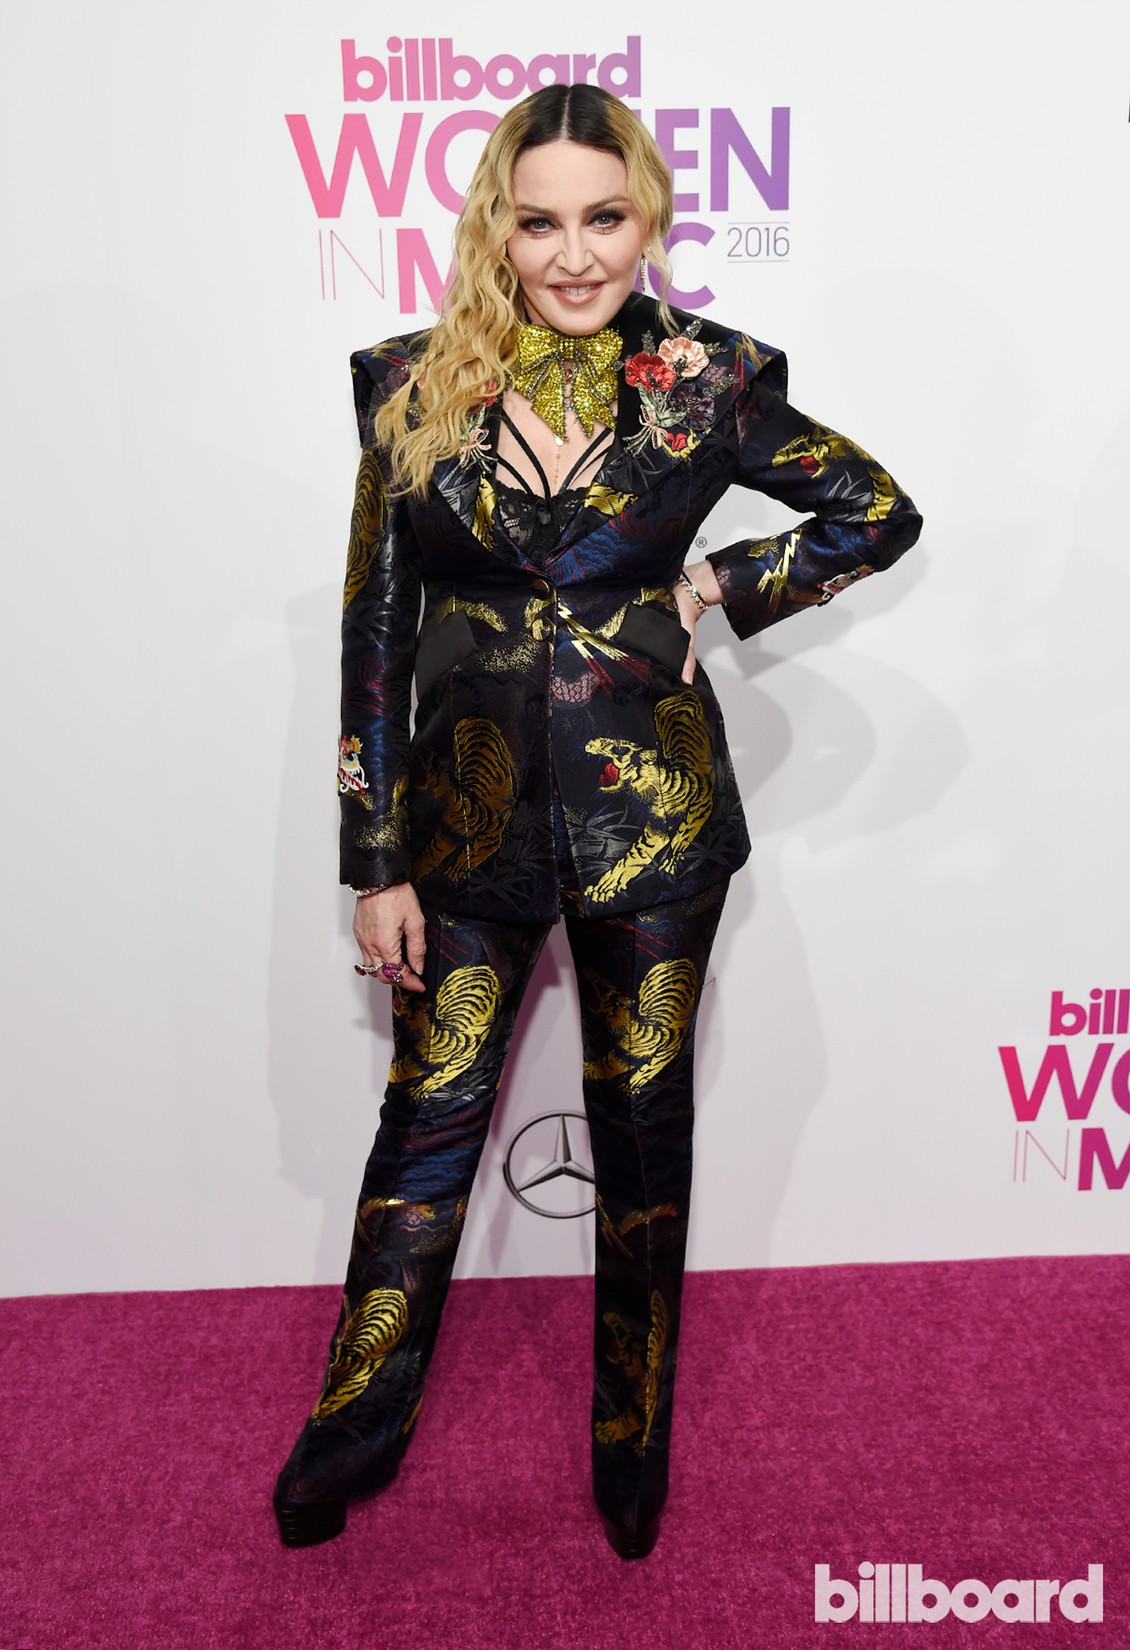 Madonna attends the Billboard Women in Music 2016 event on Dec. 9, 2016 in New York City.